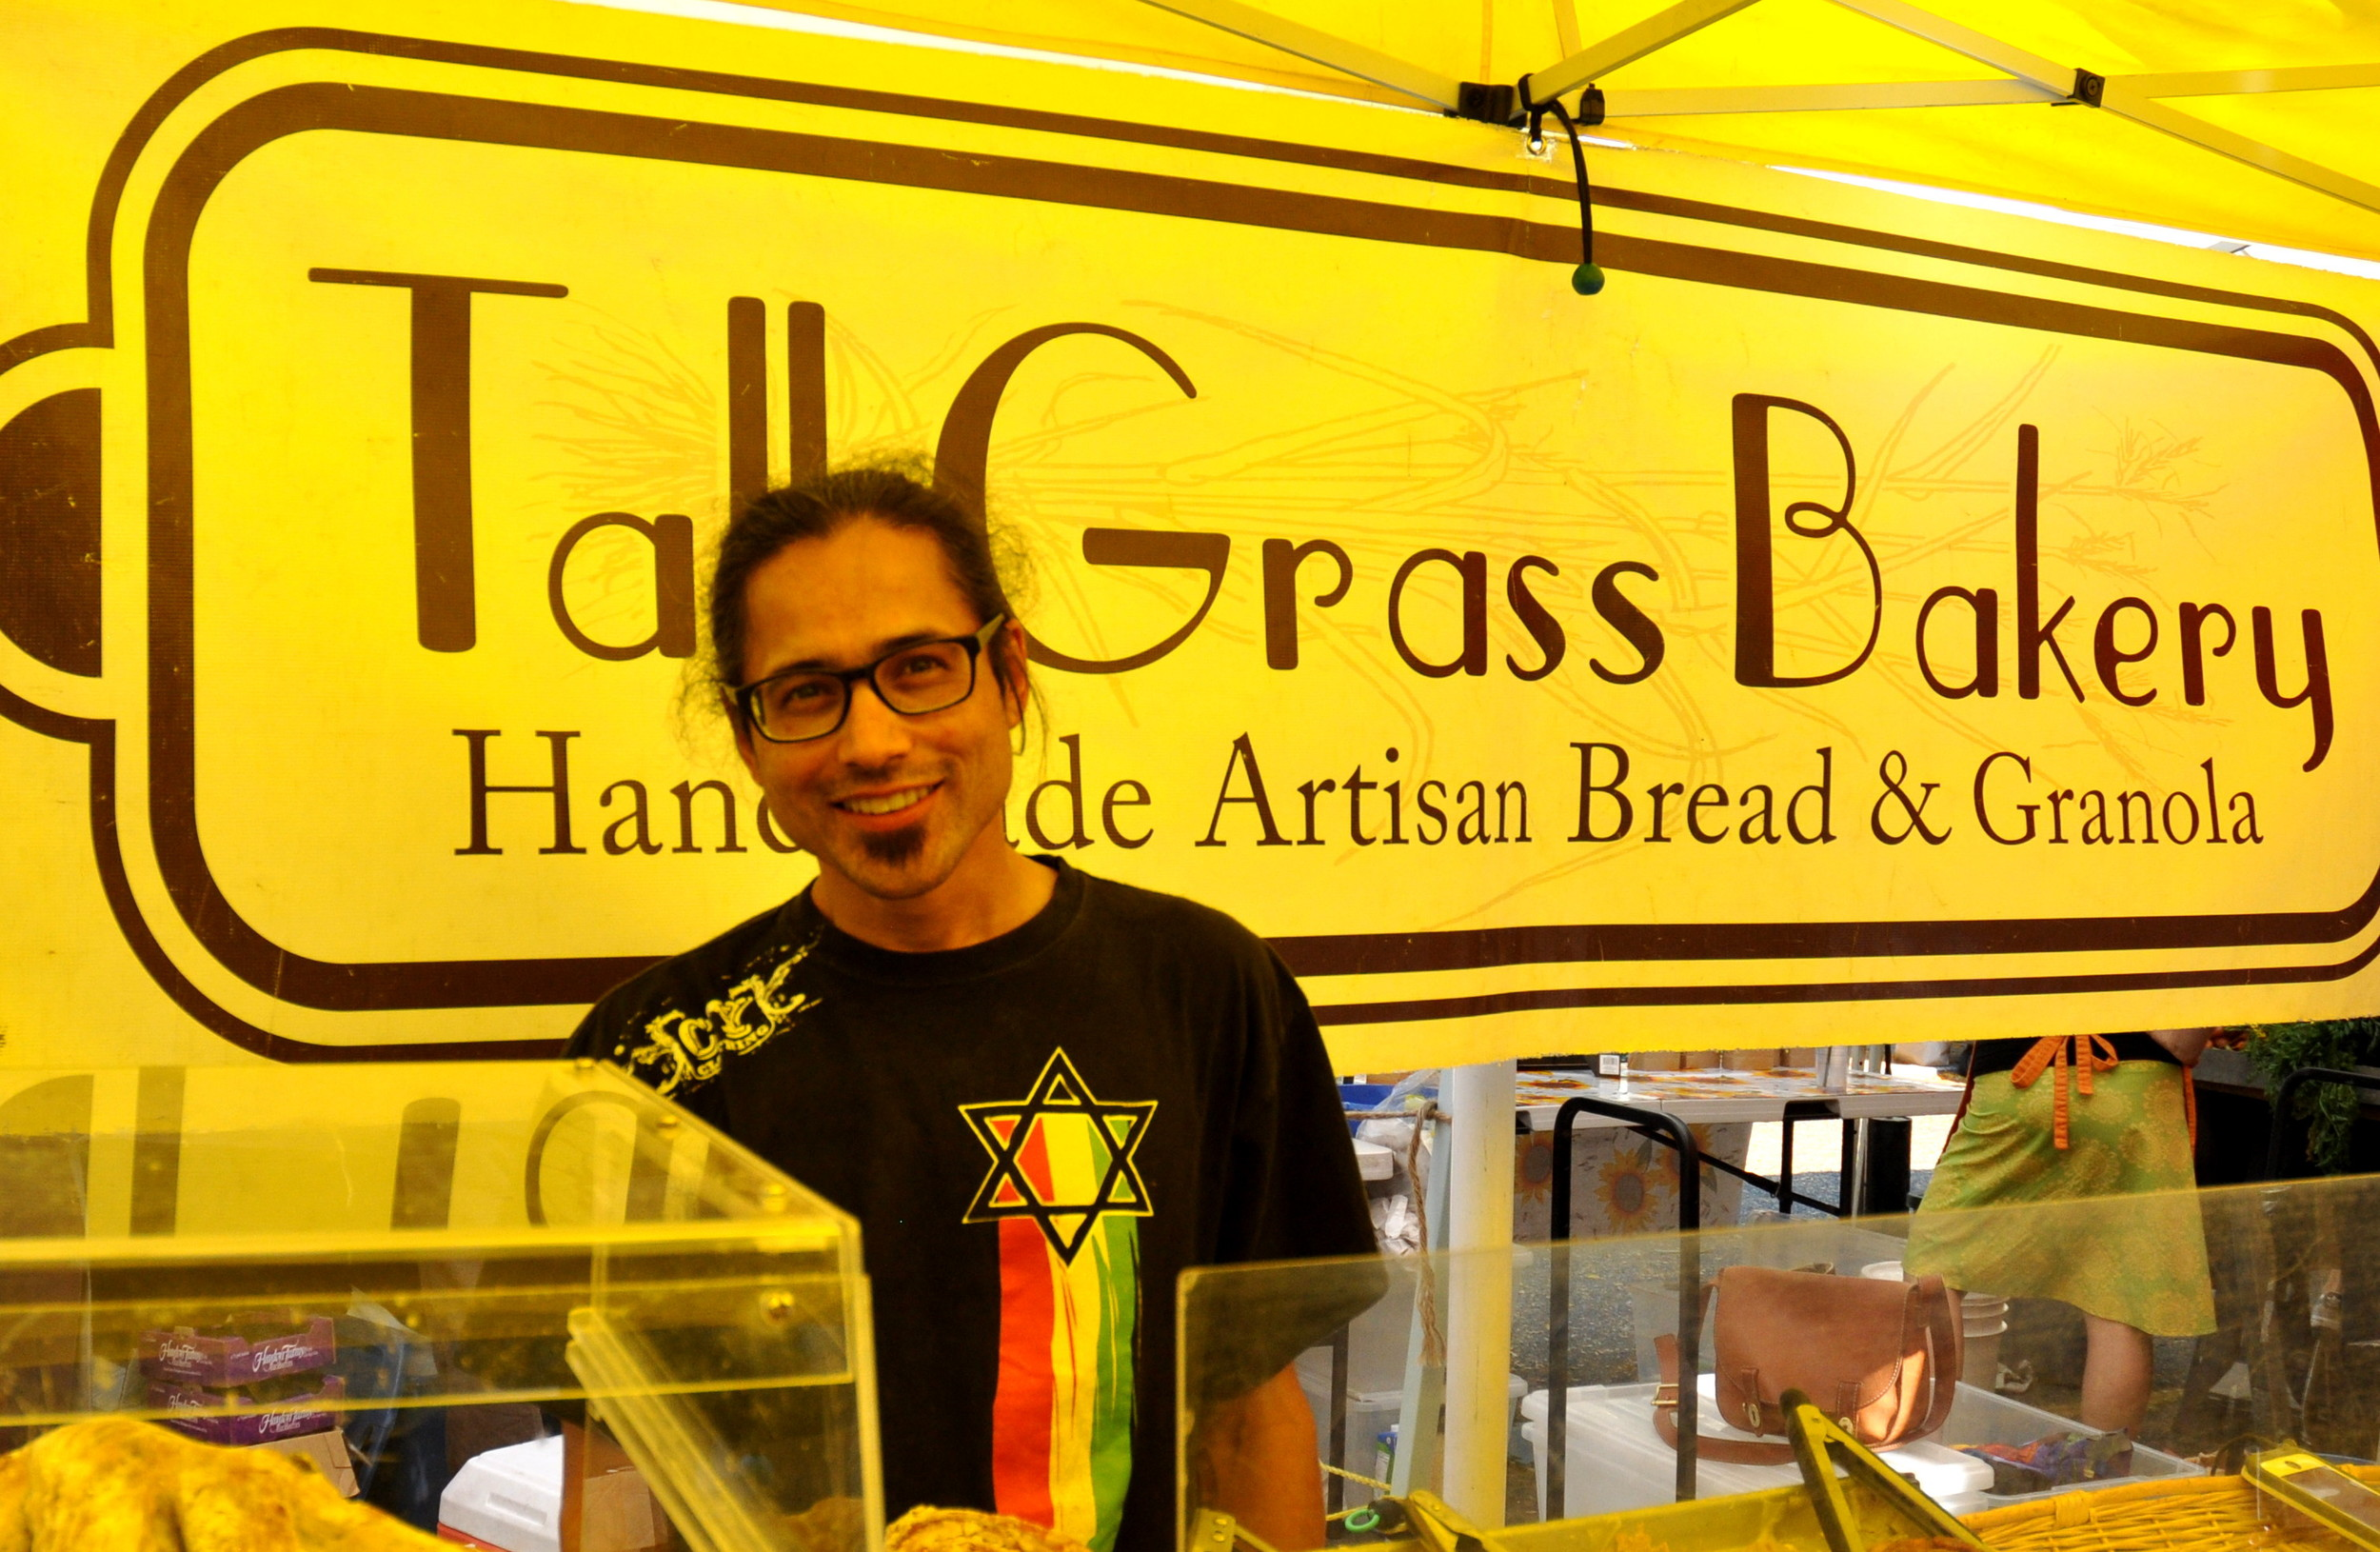 Farhad from Tall Grass Bakery at Ballard Farmers Market. Copyright Zachary D. Lyons.